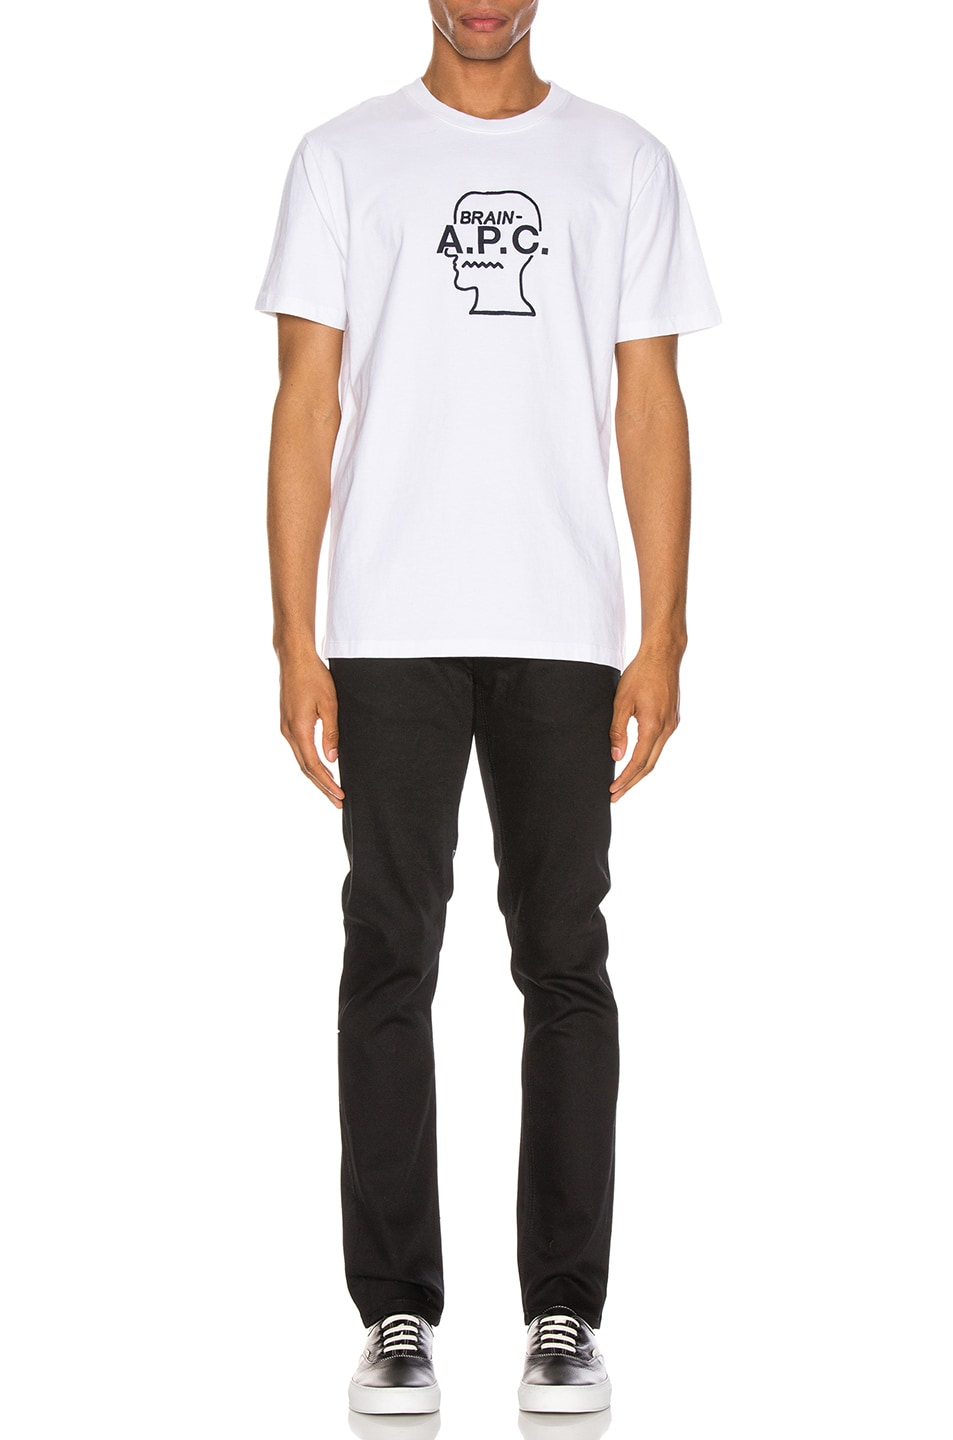 Image 4 of A.P.C. x Brain Dead Spooky T-Shirt in Blanc